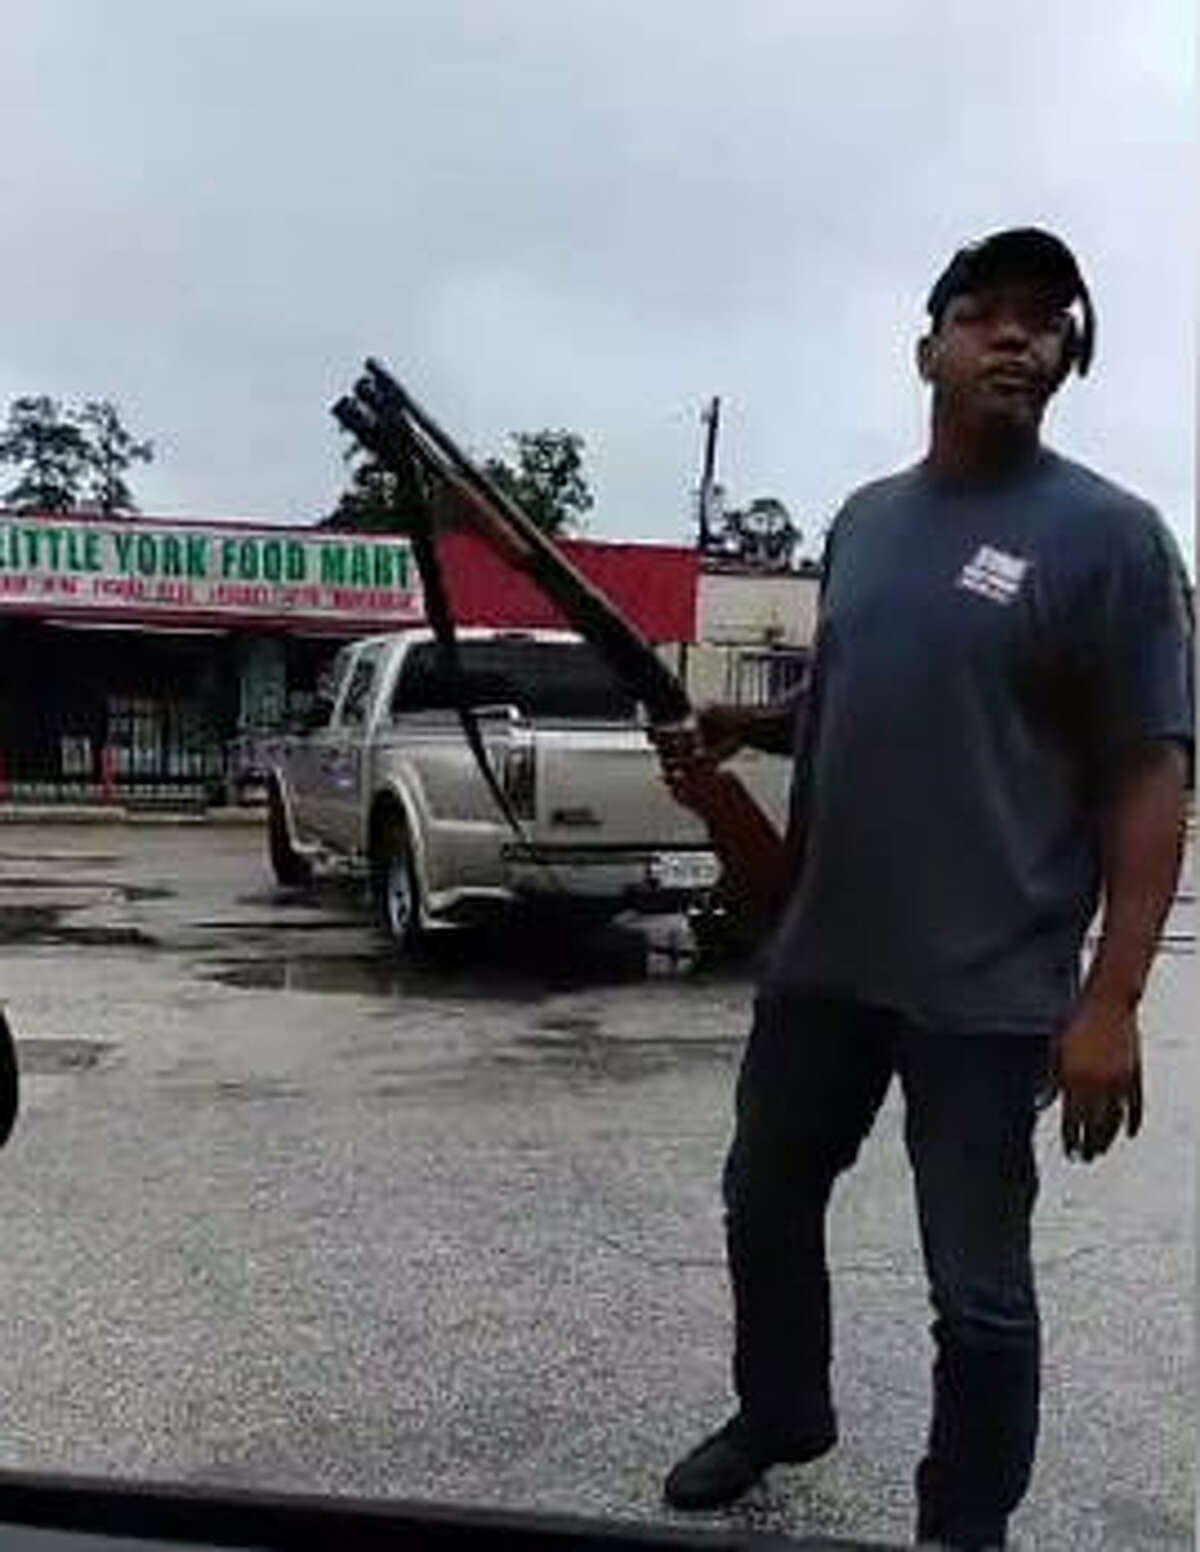 Nash John of Houston has become viral after a Facebook video showed him fighting off would-be looters from a Little York Food Mart in North Harris County with a shotgun on Aug. 8, 2017.See more images of rescues in East Texas during Hurricane Harvey.